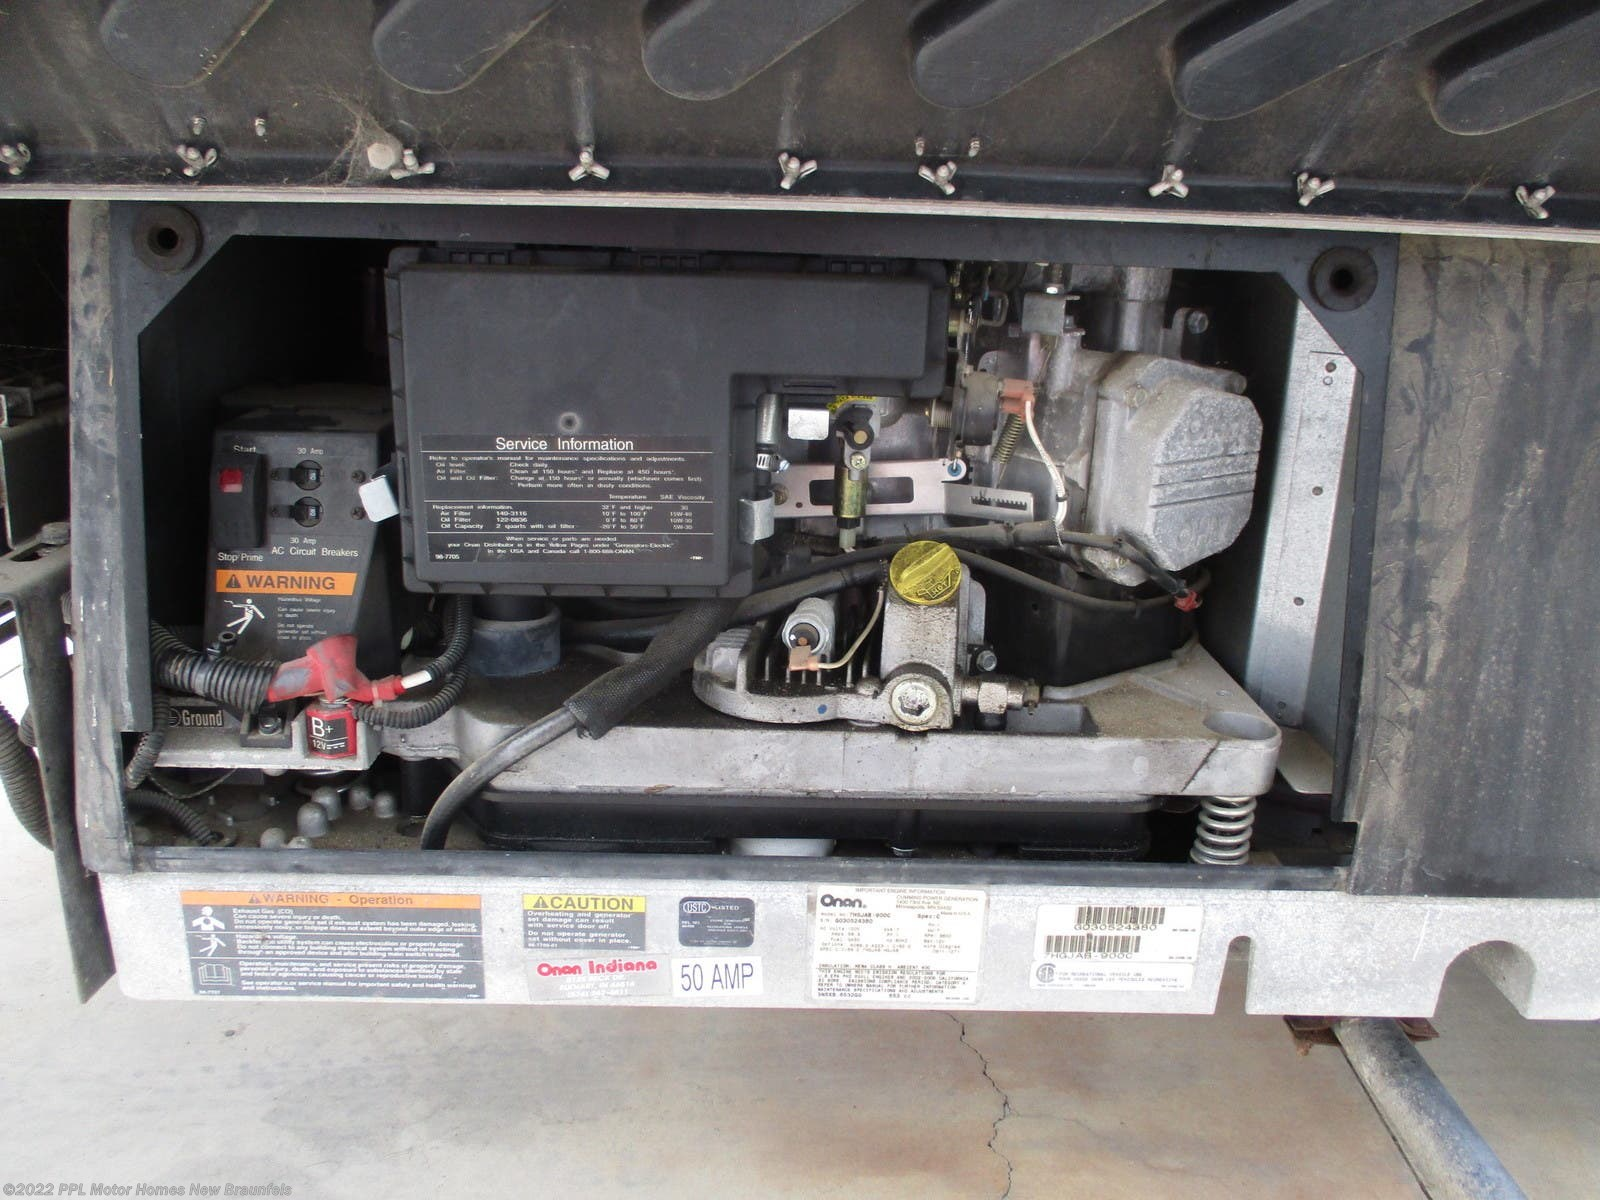 2004 Newmar RV Mountain Aire 38RLPK for Sale in New unfels, TX 78130 on